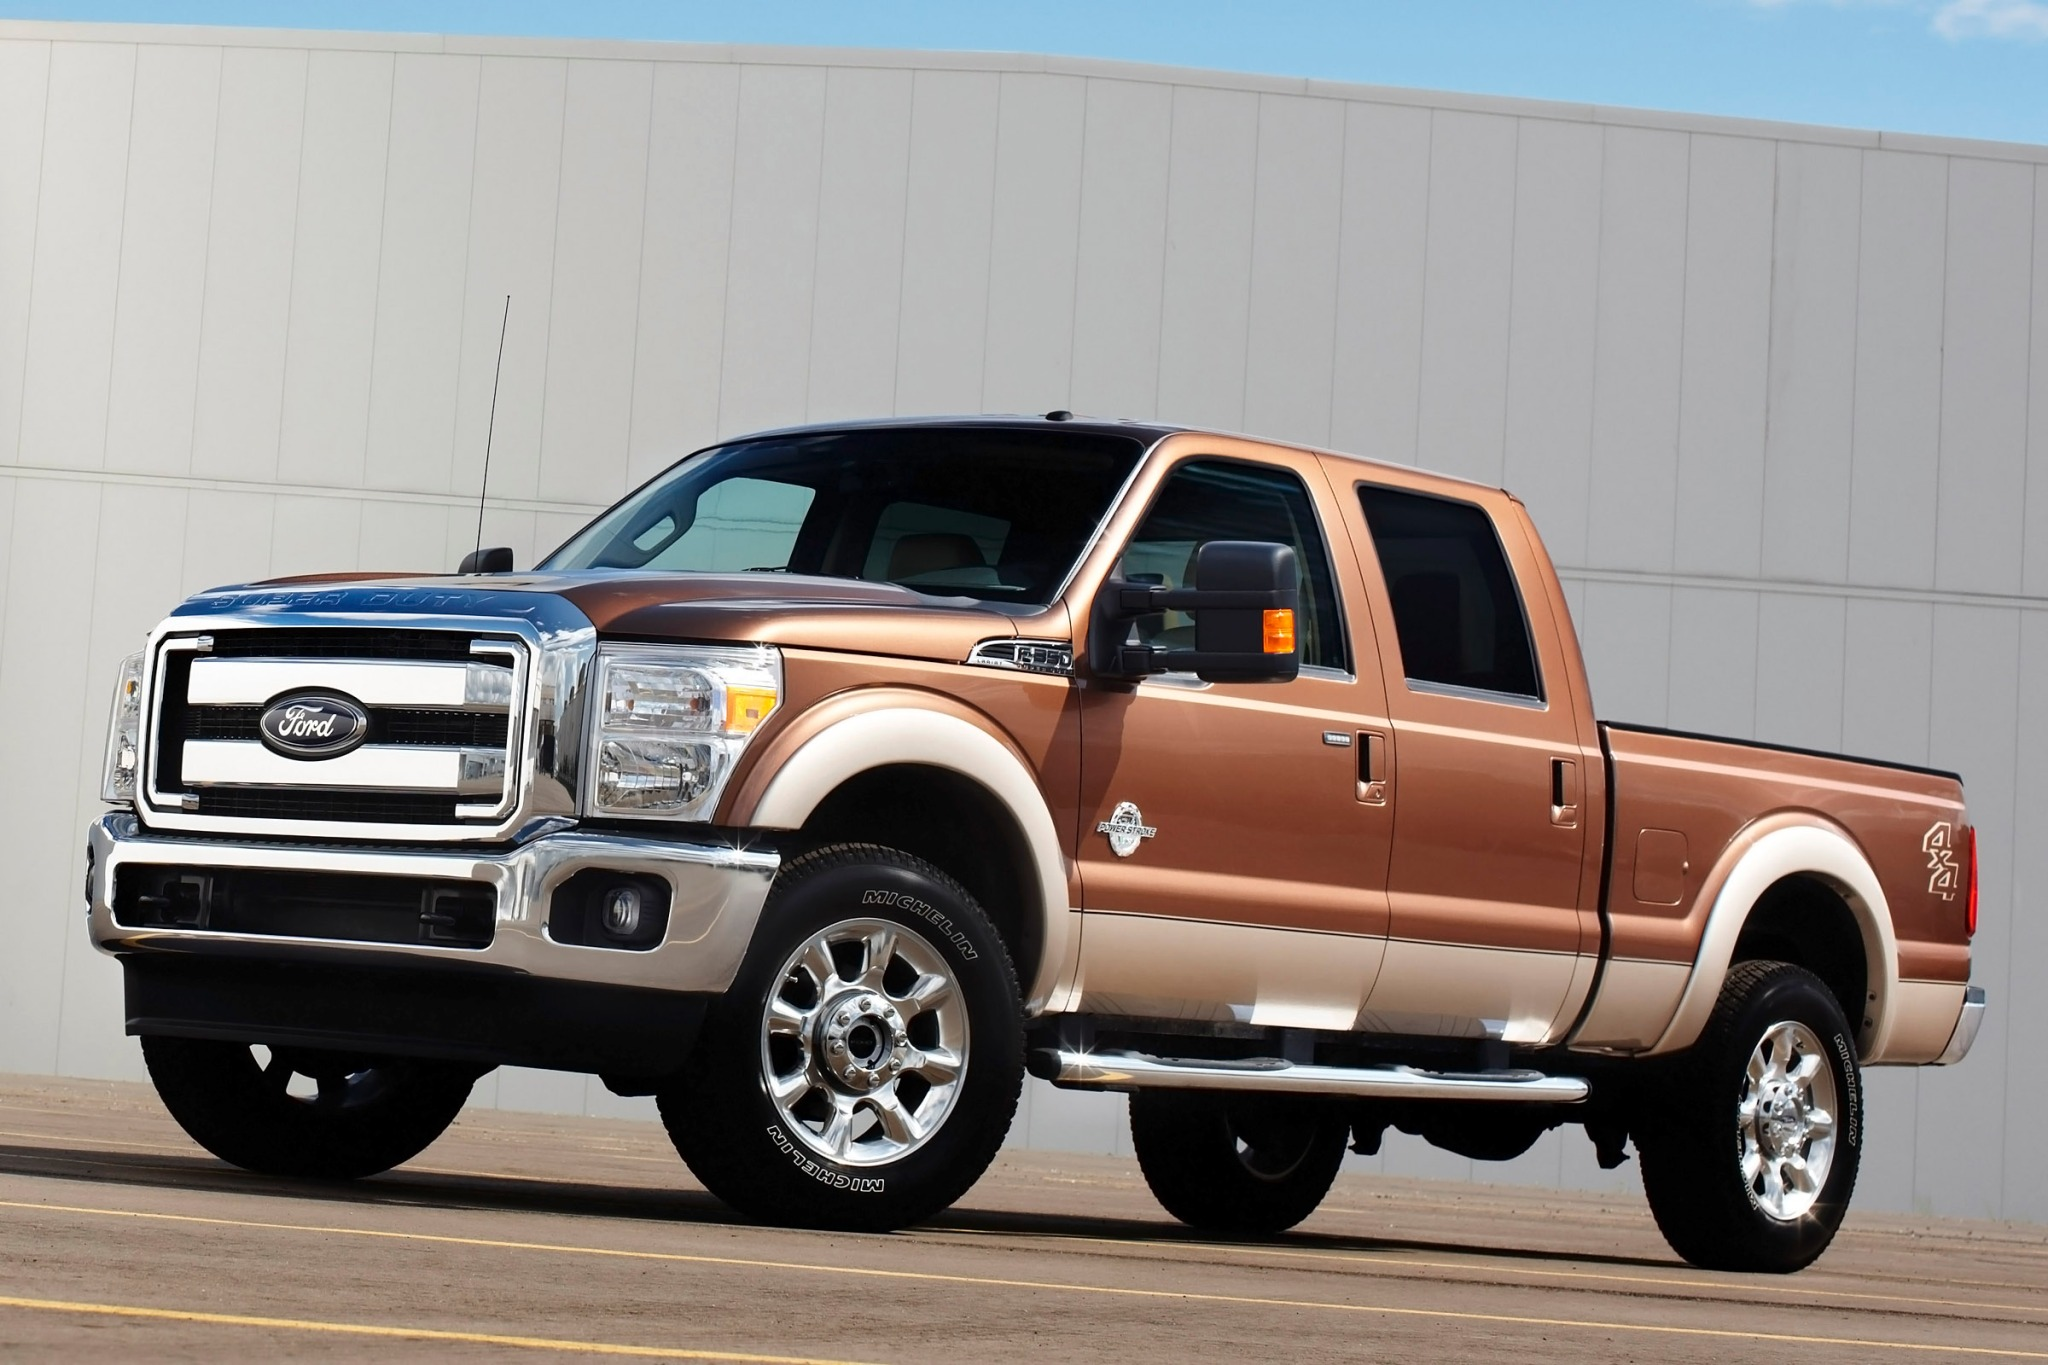 2014 Ford F-250 Super Dut interior #8